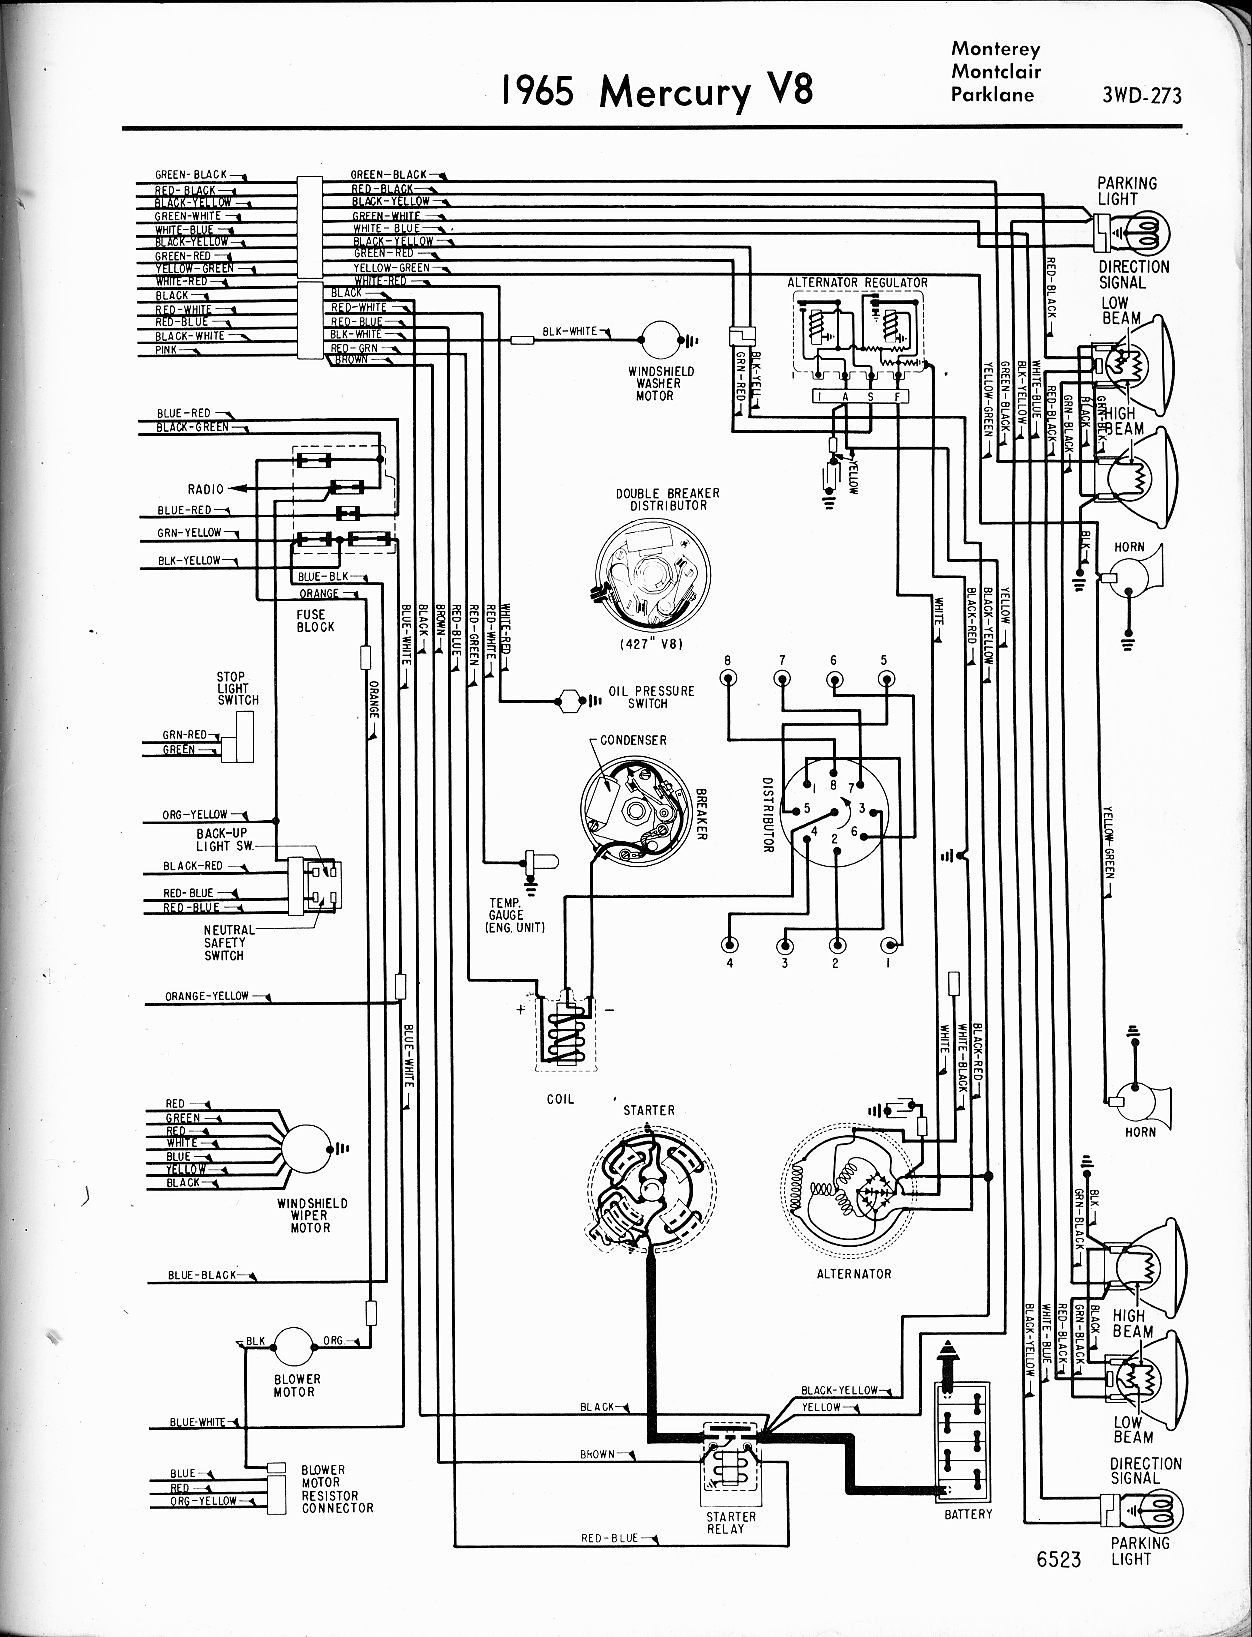 Wire Diagram For 1966 Mercury Cougar | Wiring Diagram on